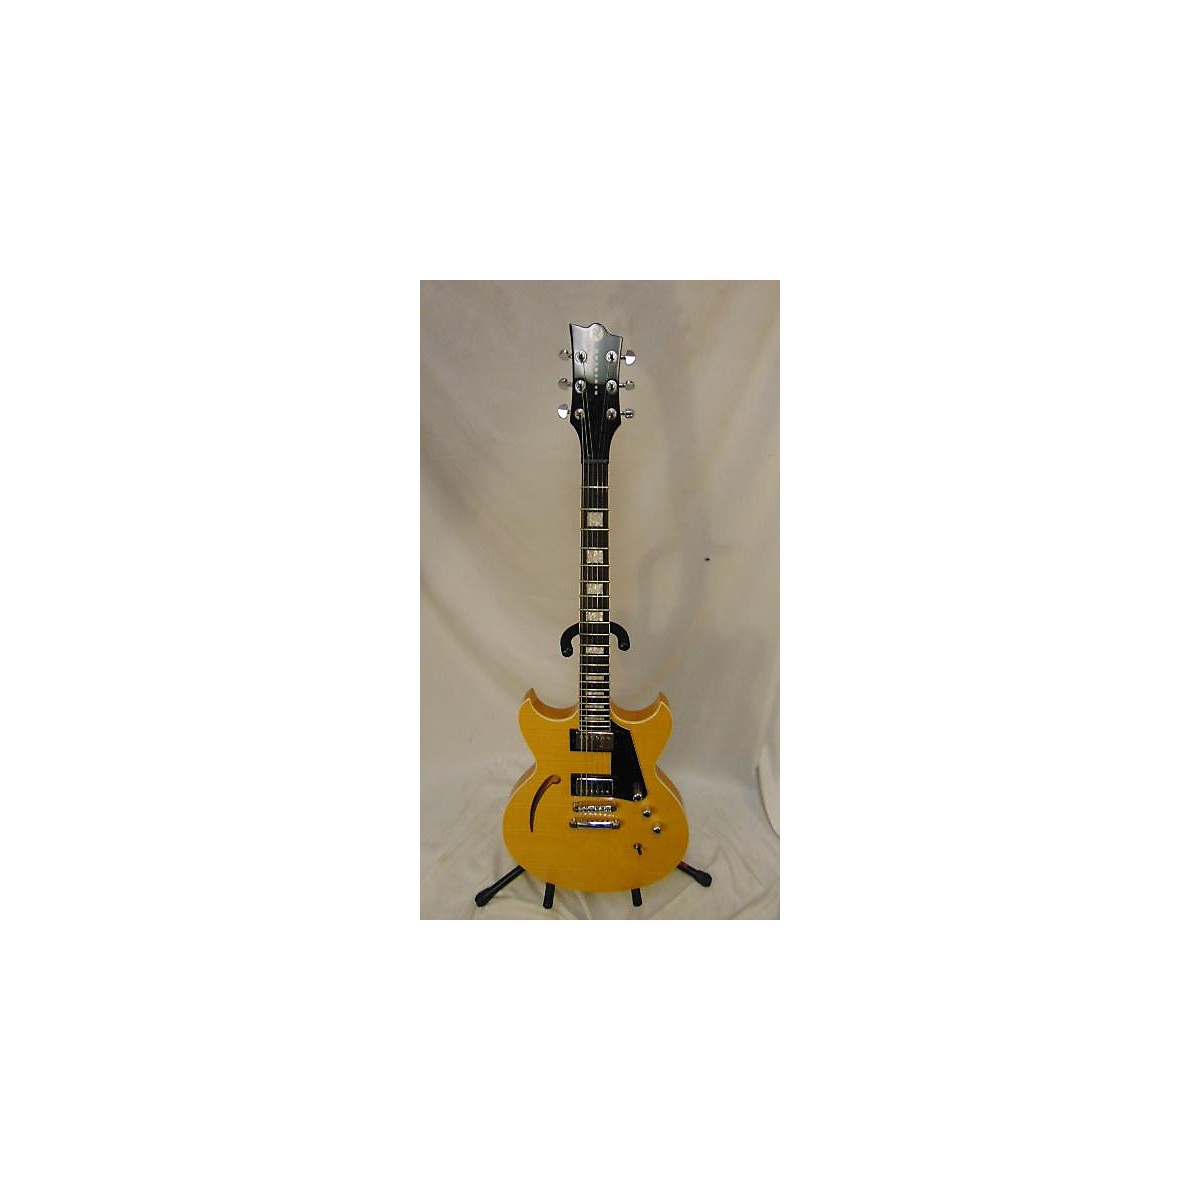 Reverend Manta Ray Hb Hollow Body Electric Guitar